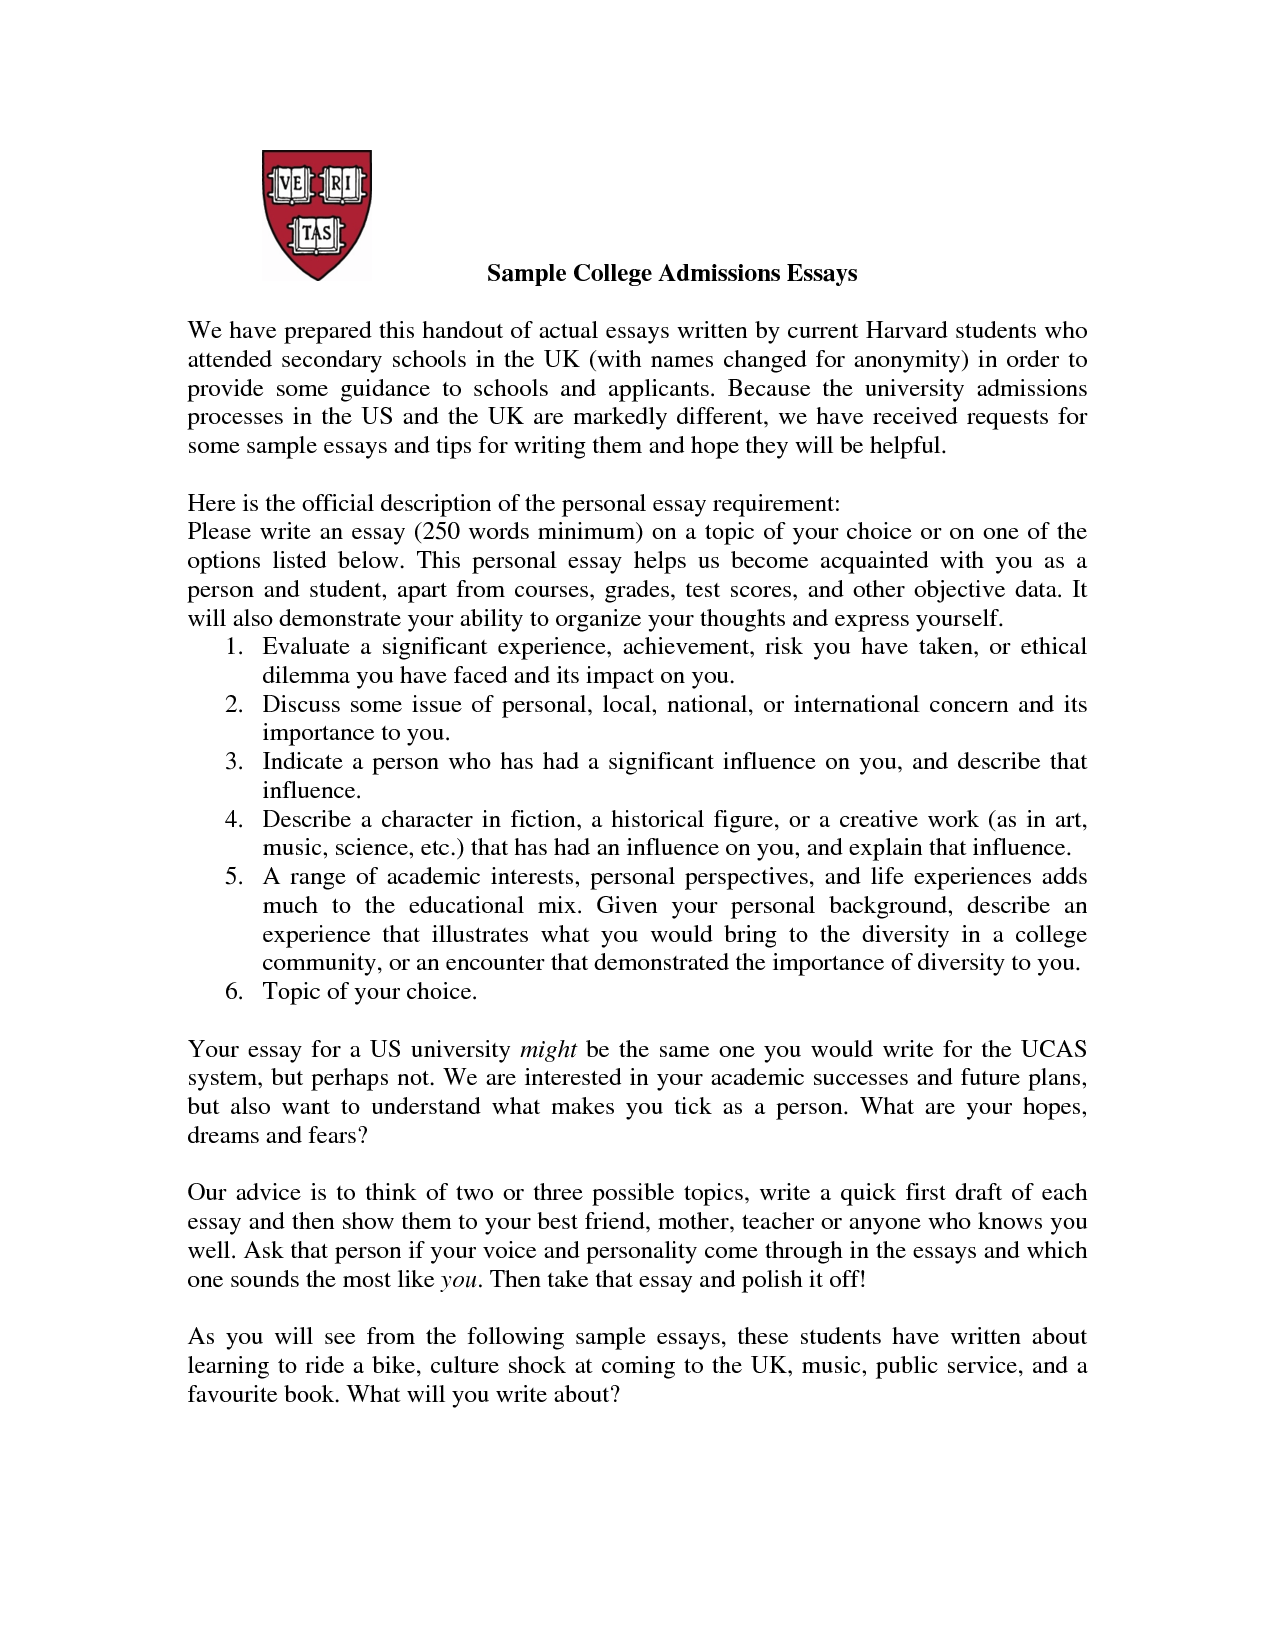 001 Admission Essay Sample Example Impressive Mba Samples Pdf Free For Graduate School Full